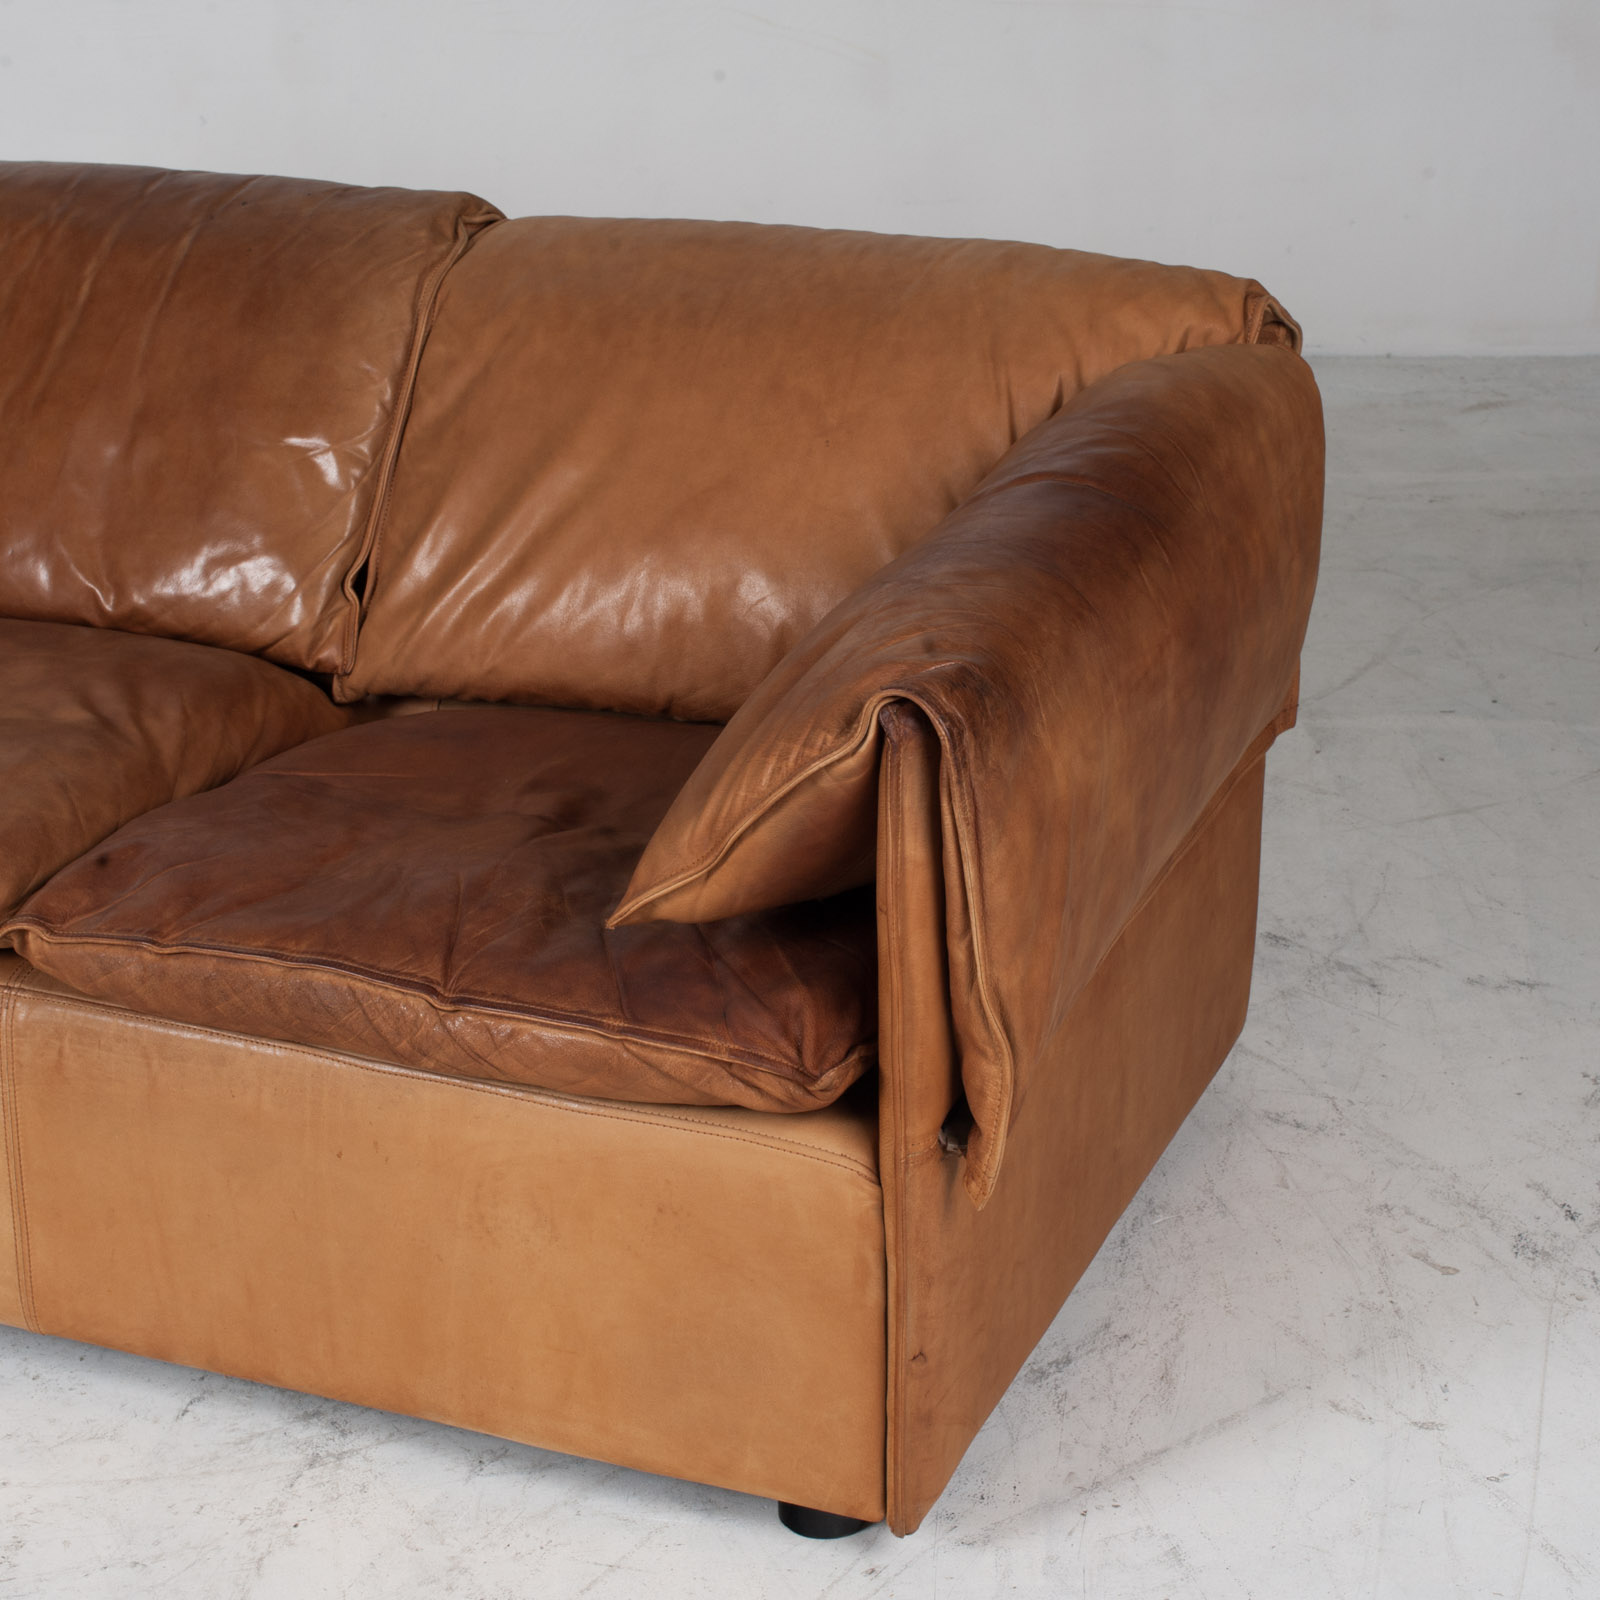 Model Lotus 3 Seat Sofa By Eilersen In Tan Leather 1970s Denmark 06